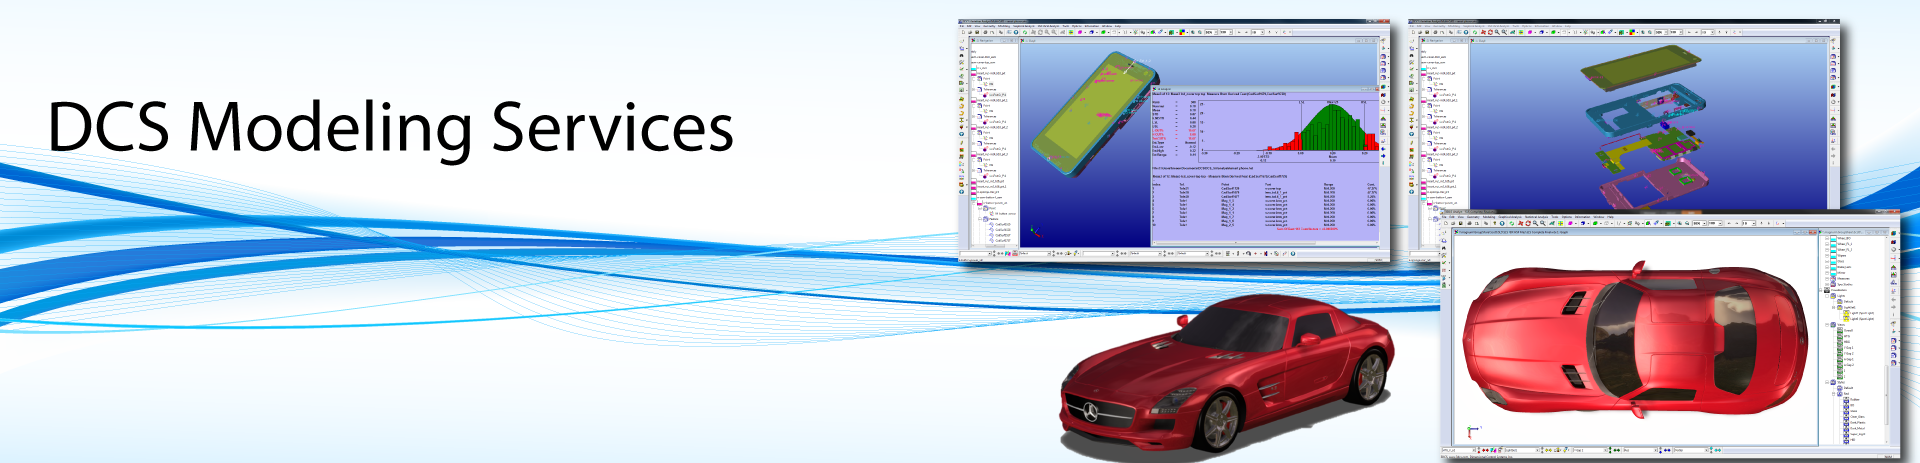 DCS-modeling-services-Banner5.png